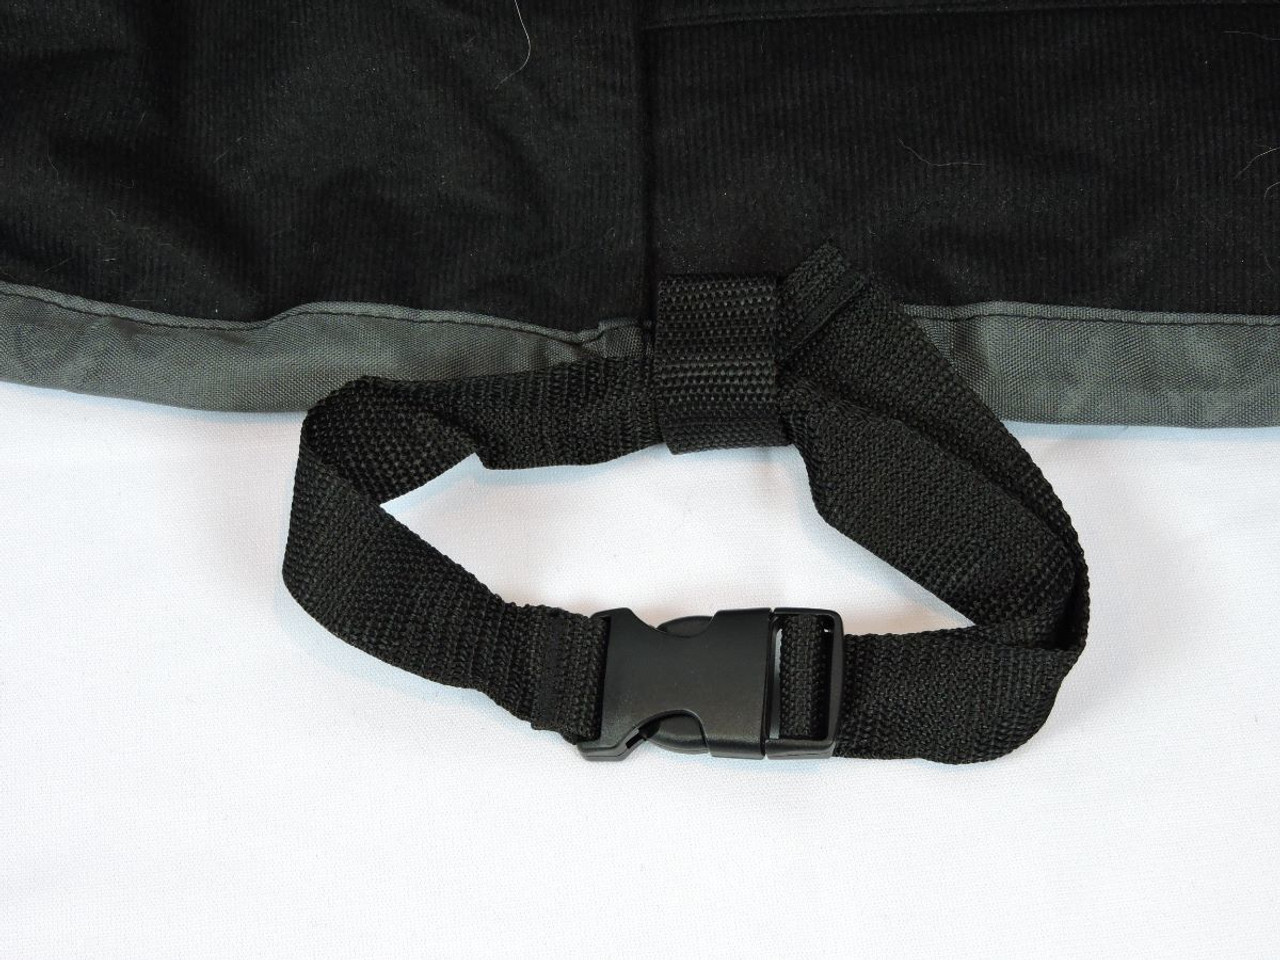 Straps with buckles to tie to furniture legs